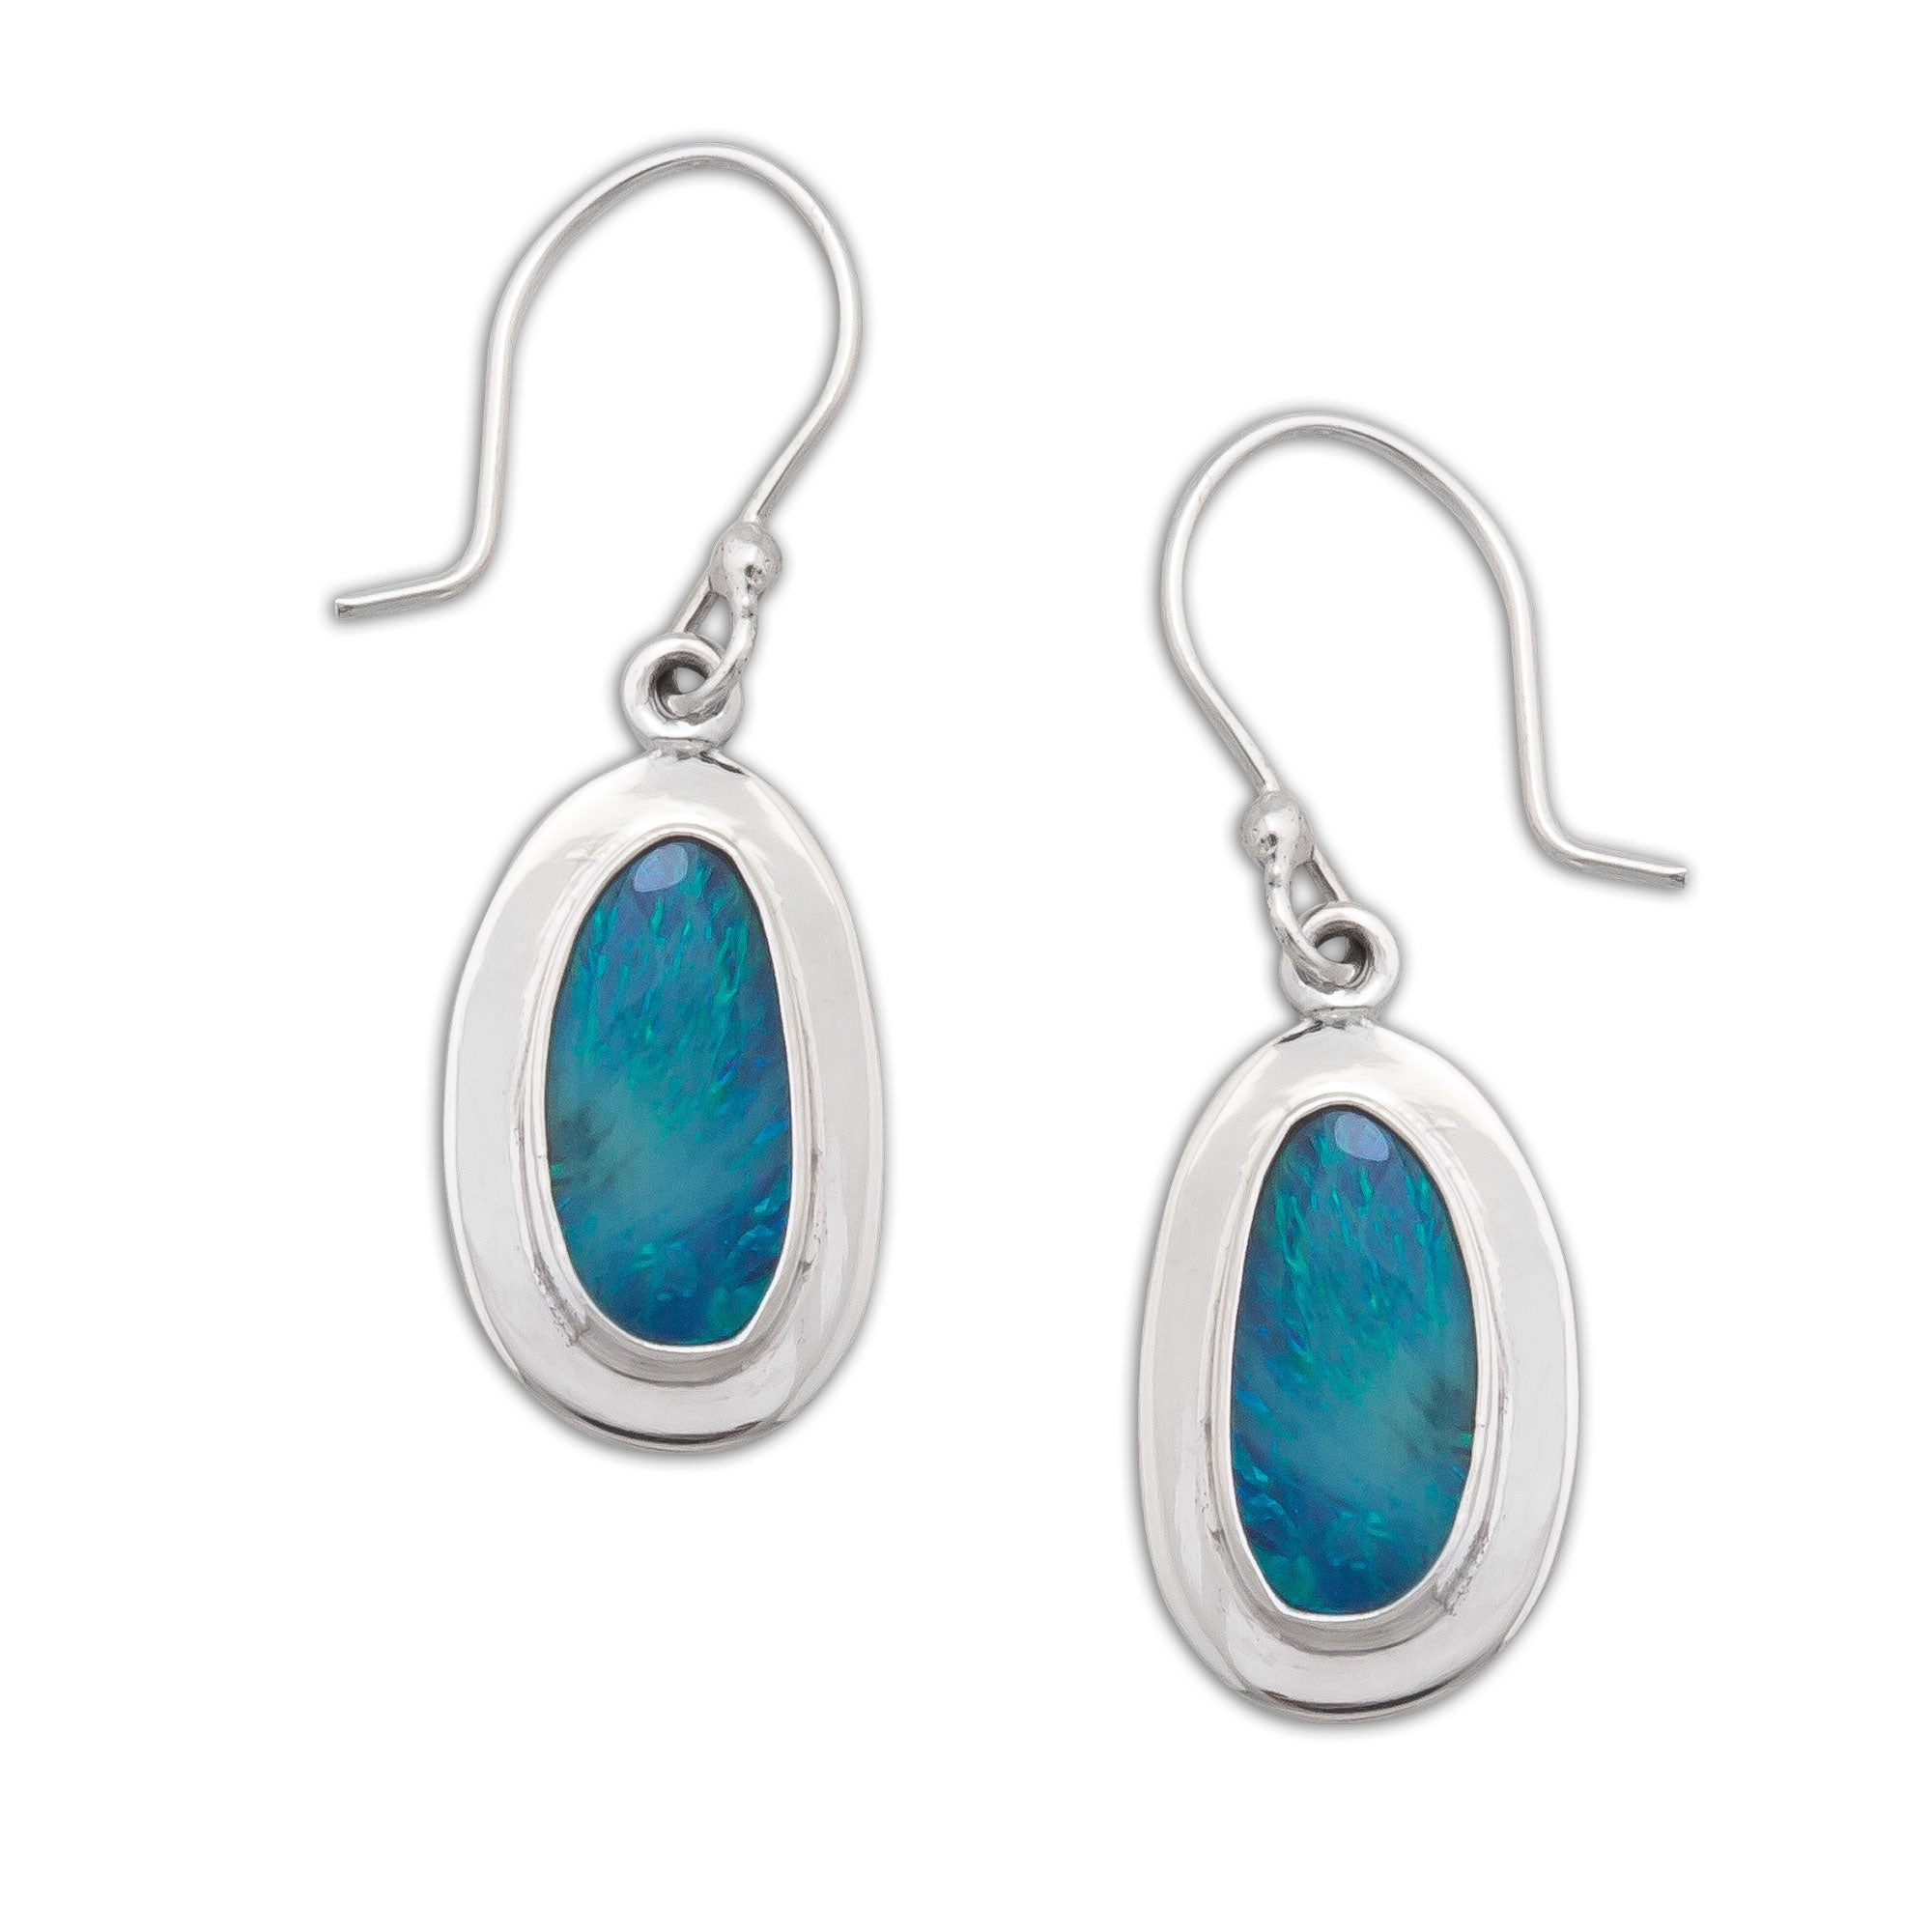 Sterling-Silver-Light-Blue-Opal-Drop-Earrings-with-Detailed-Edge-1-Charles Albert Inc